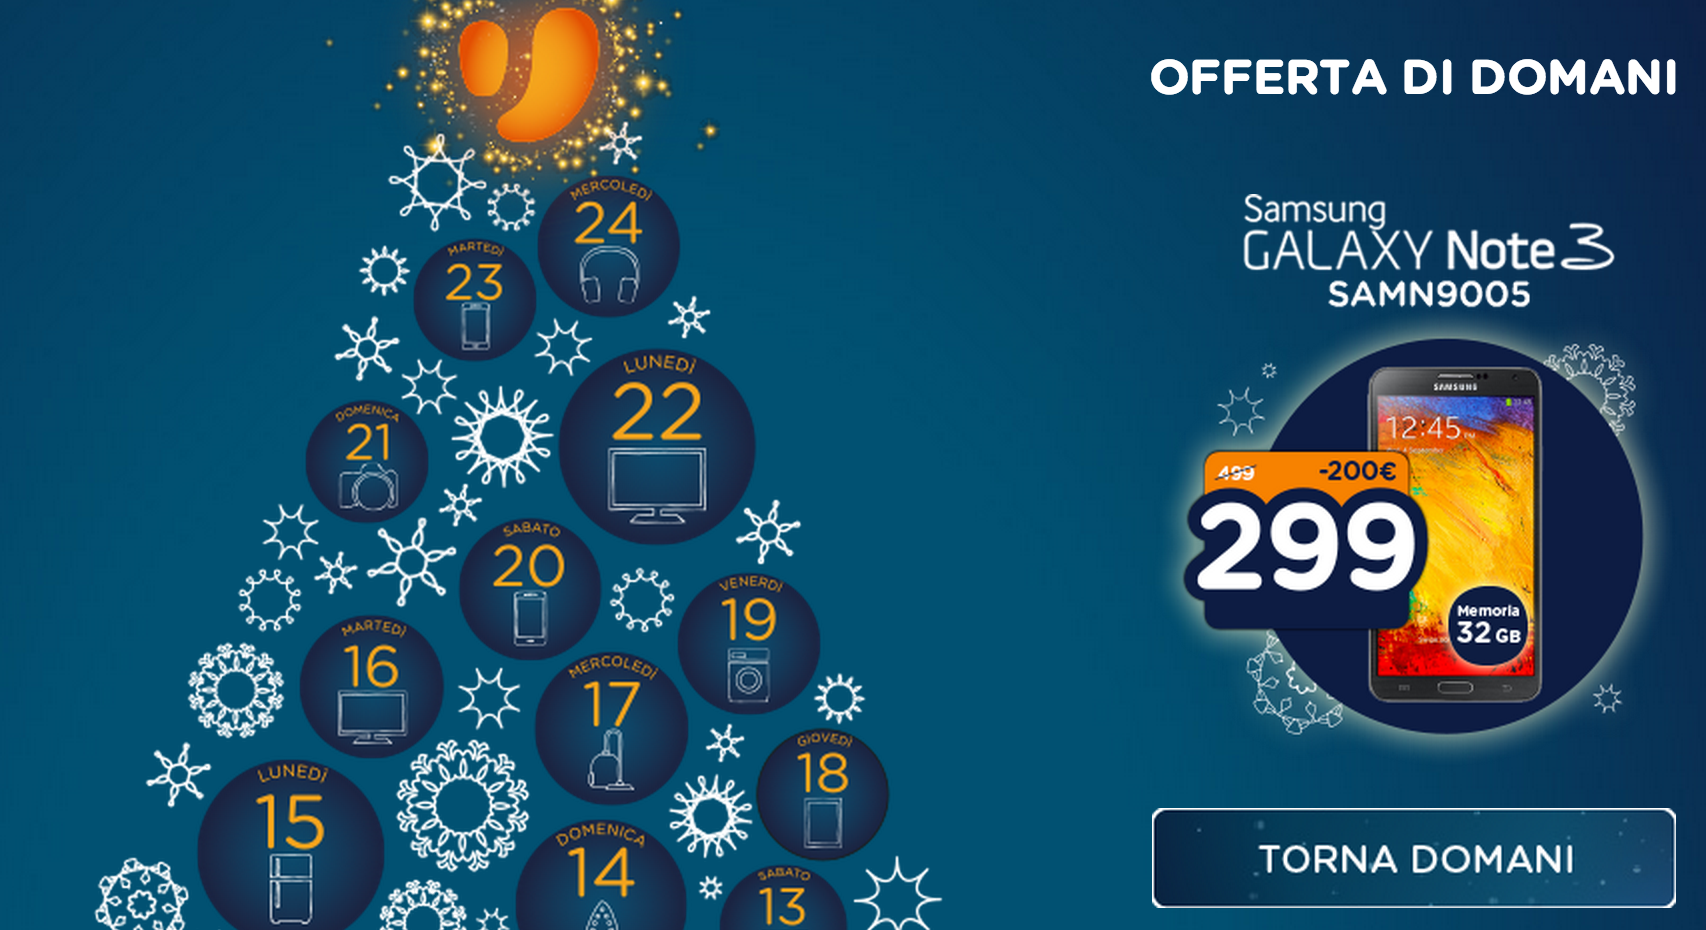 http://img.tuttoandroid.net/wp-content/uploads/2014/12/note-3-offerta-unieuro.png